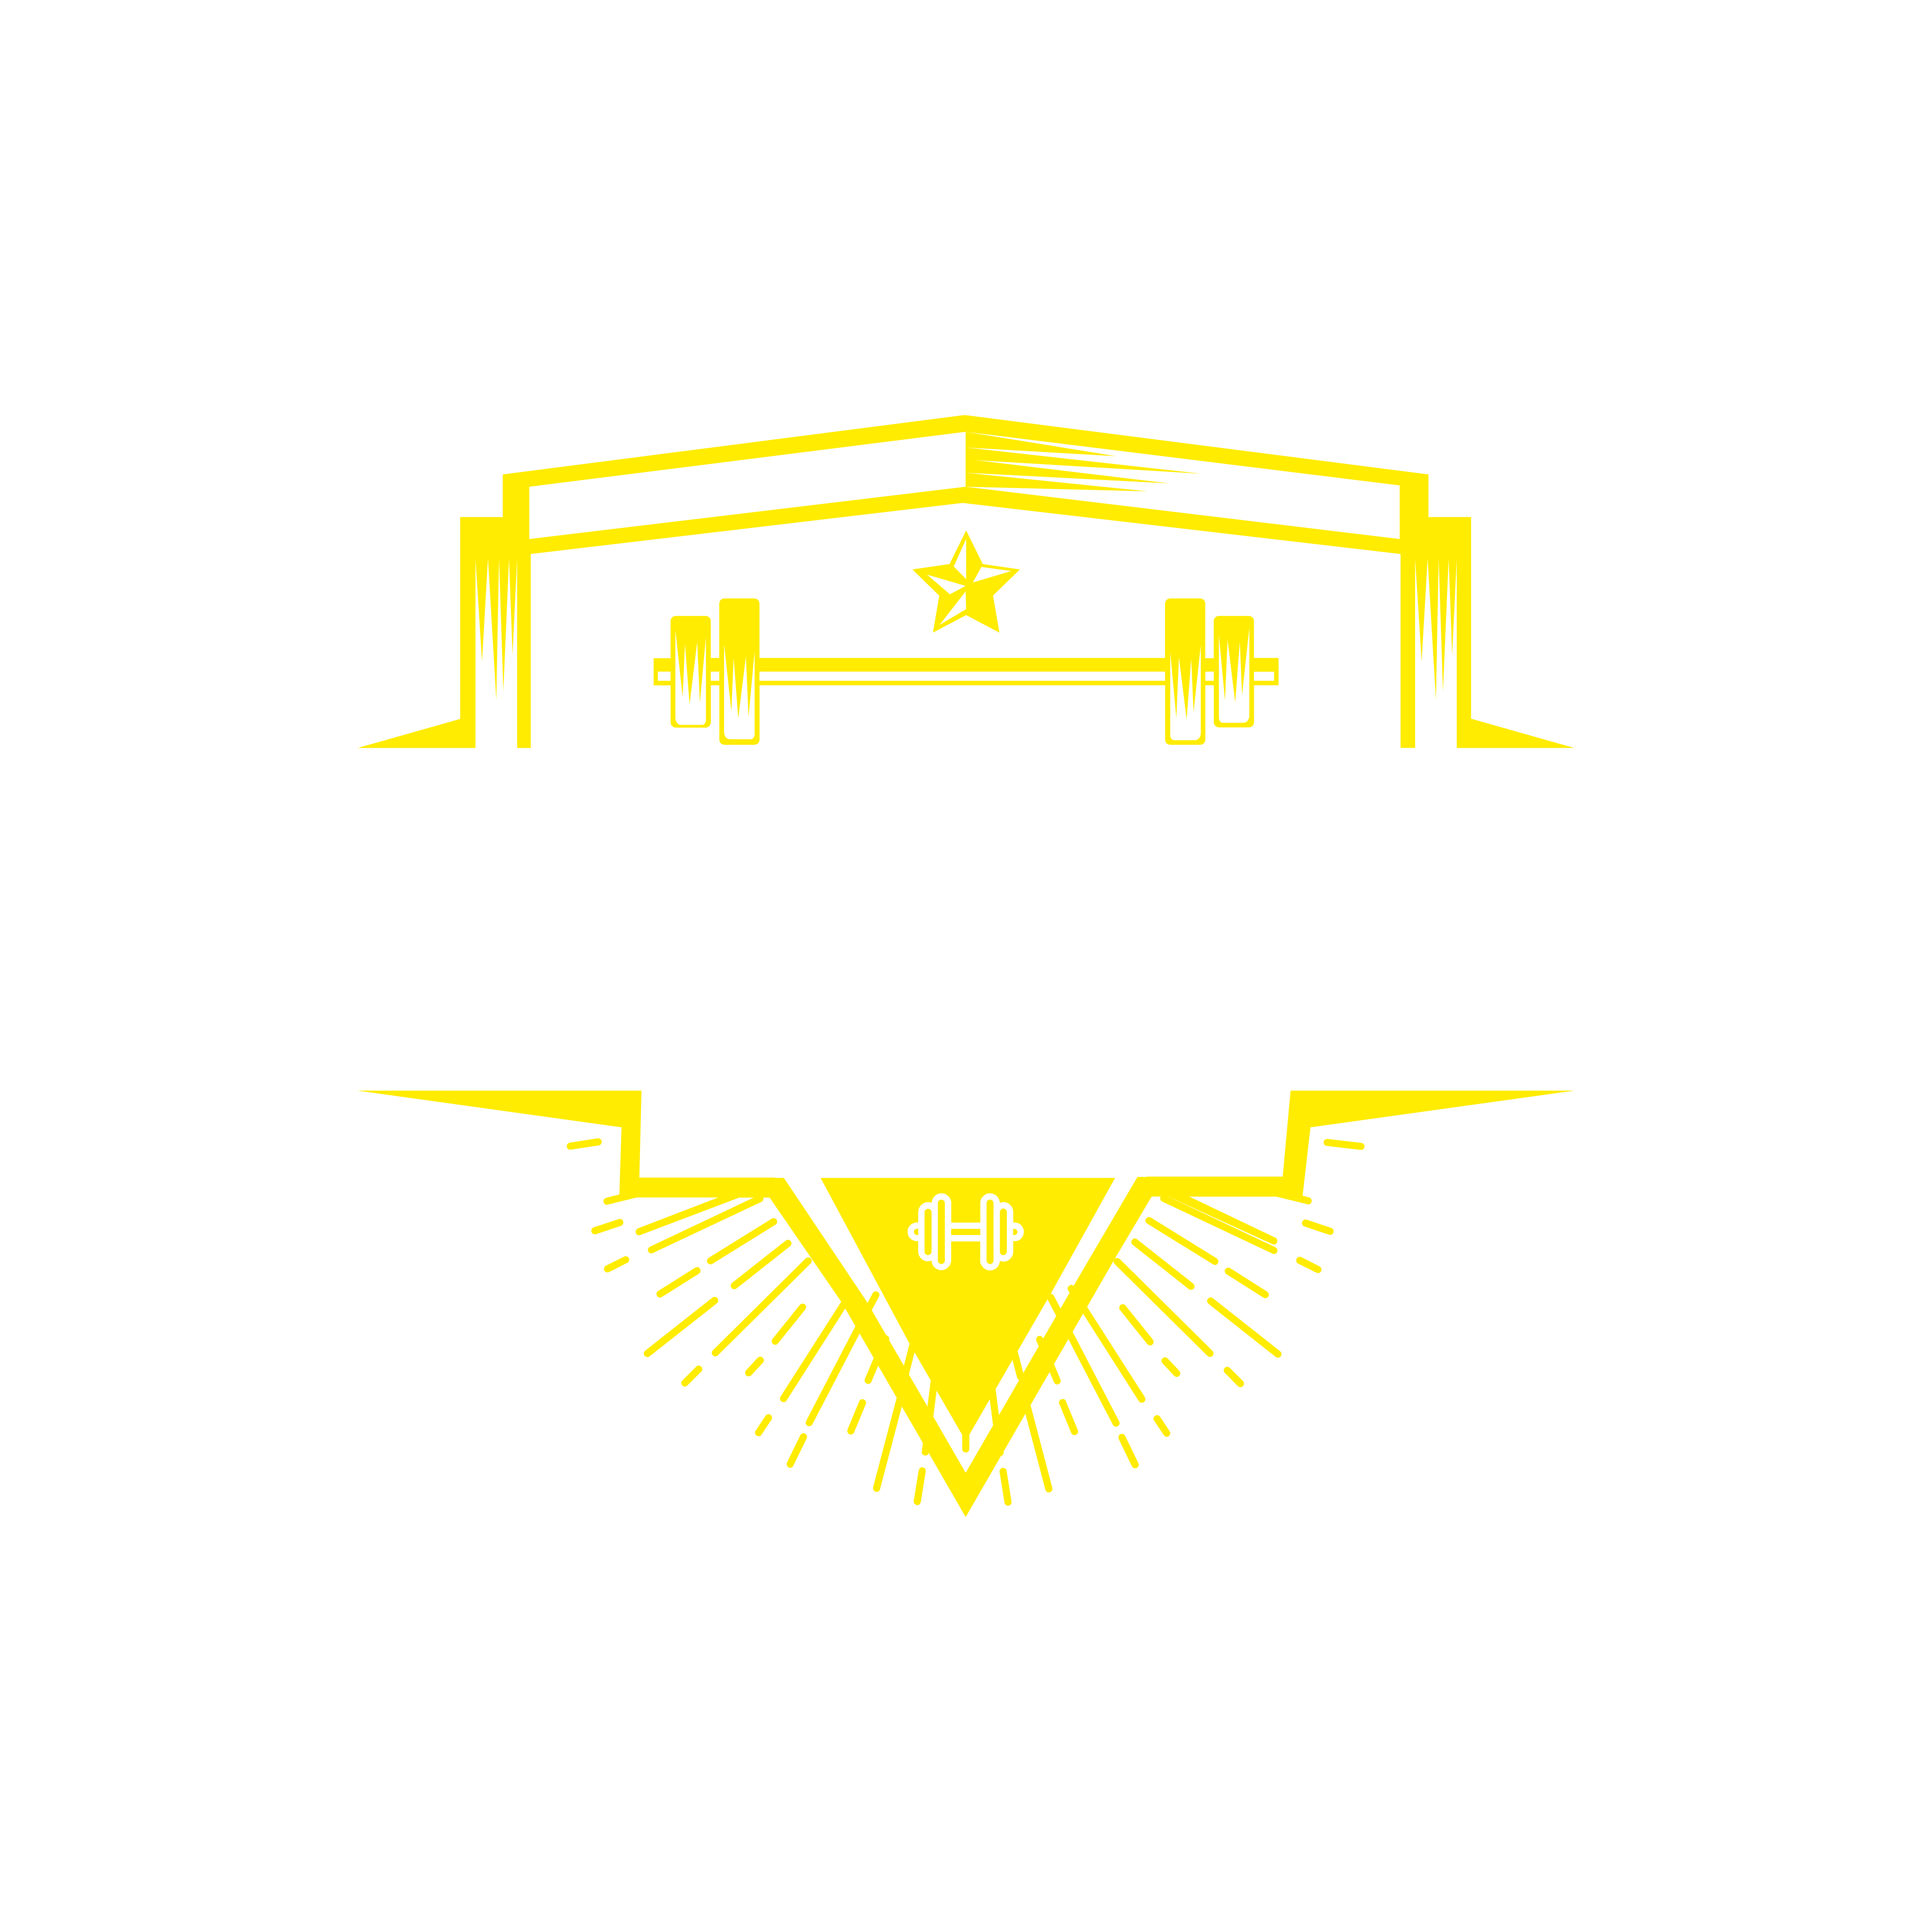 Personalfteam